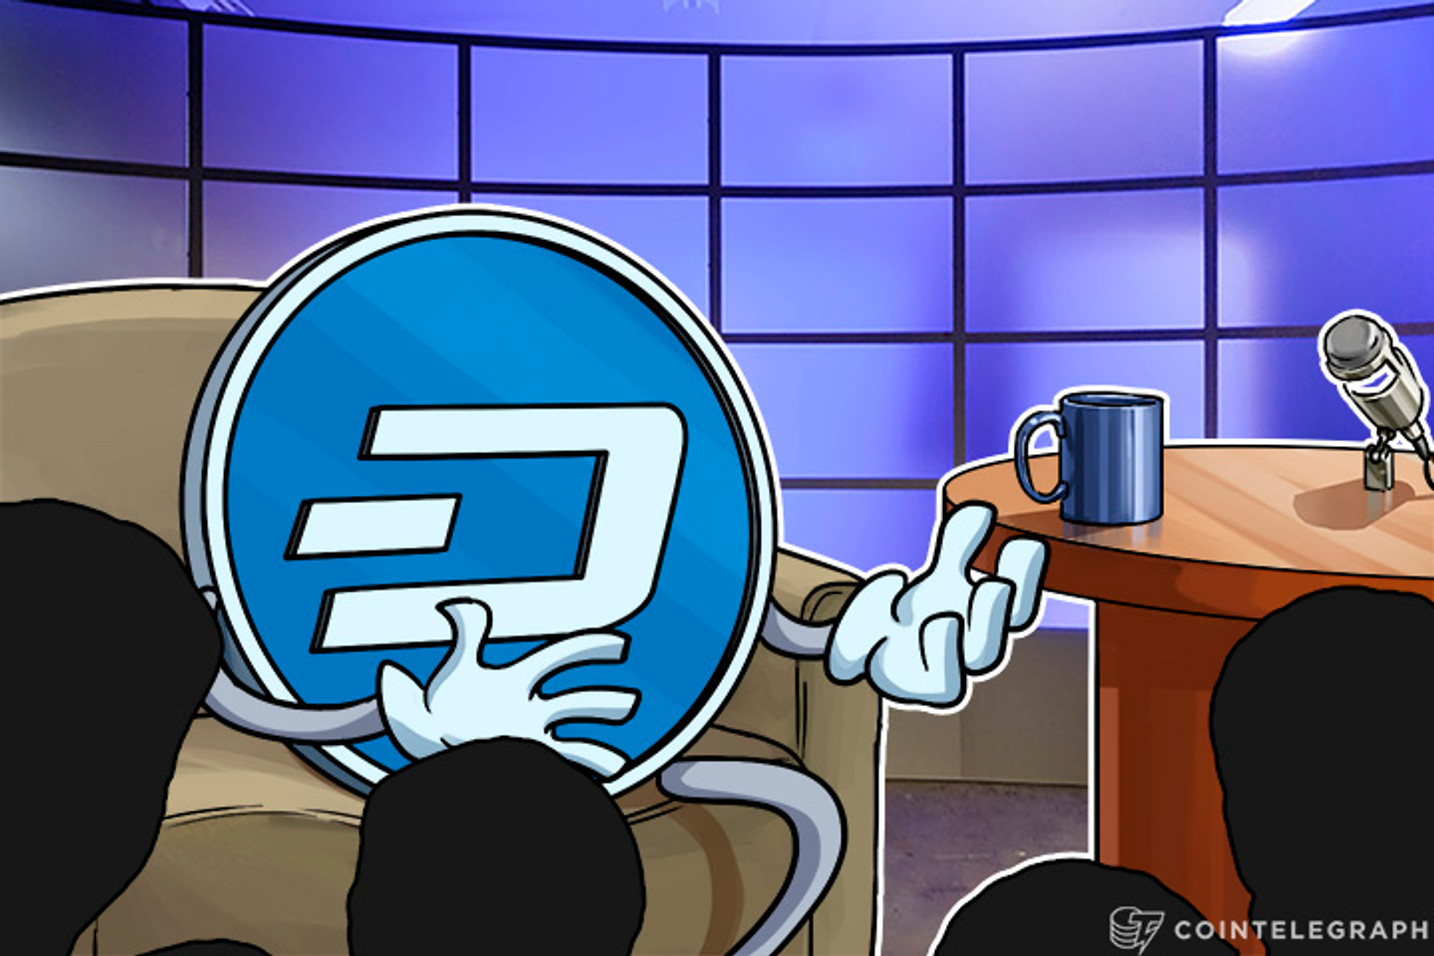 Digital Currency Meets Mixed Martial Arts as Renowned Coach Gives Away $20,000 in Dash